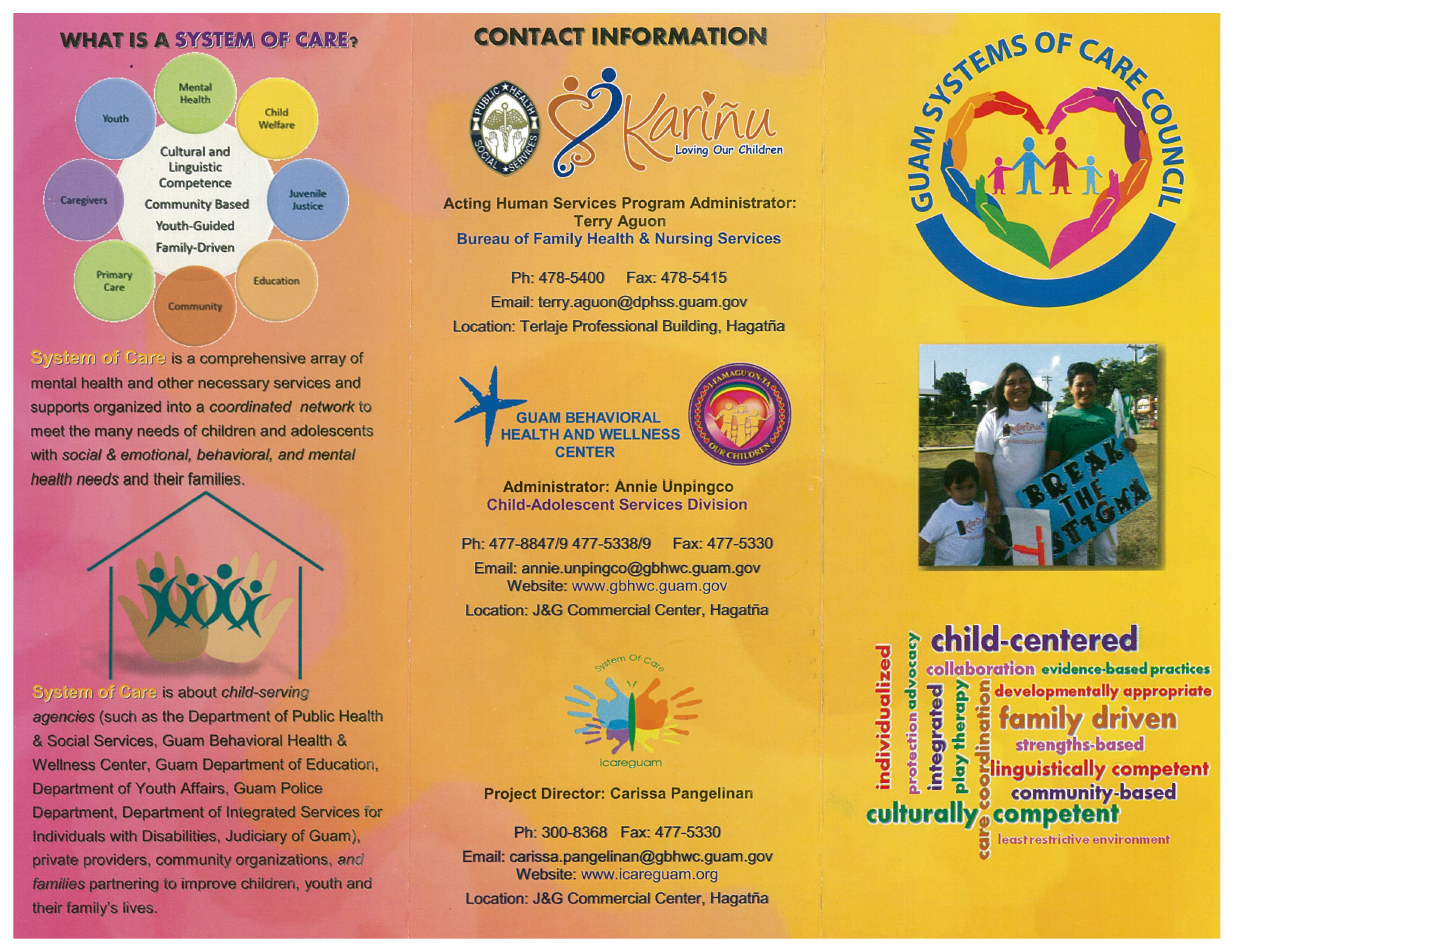 Guam System Of Care Council Brochure Guam Behavioral Health And - Guam location